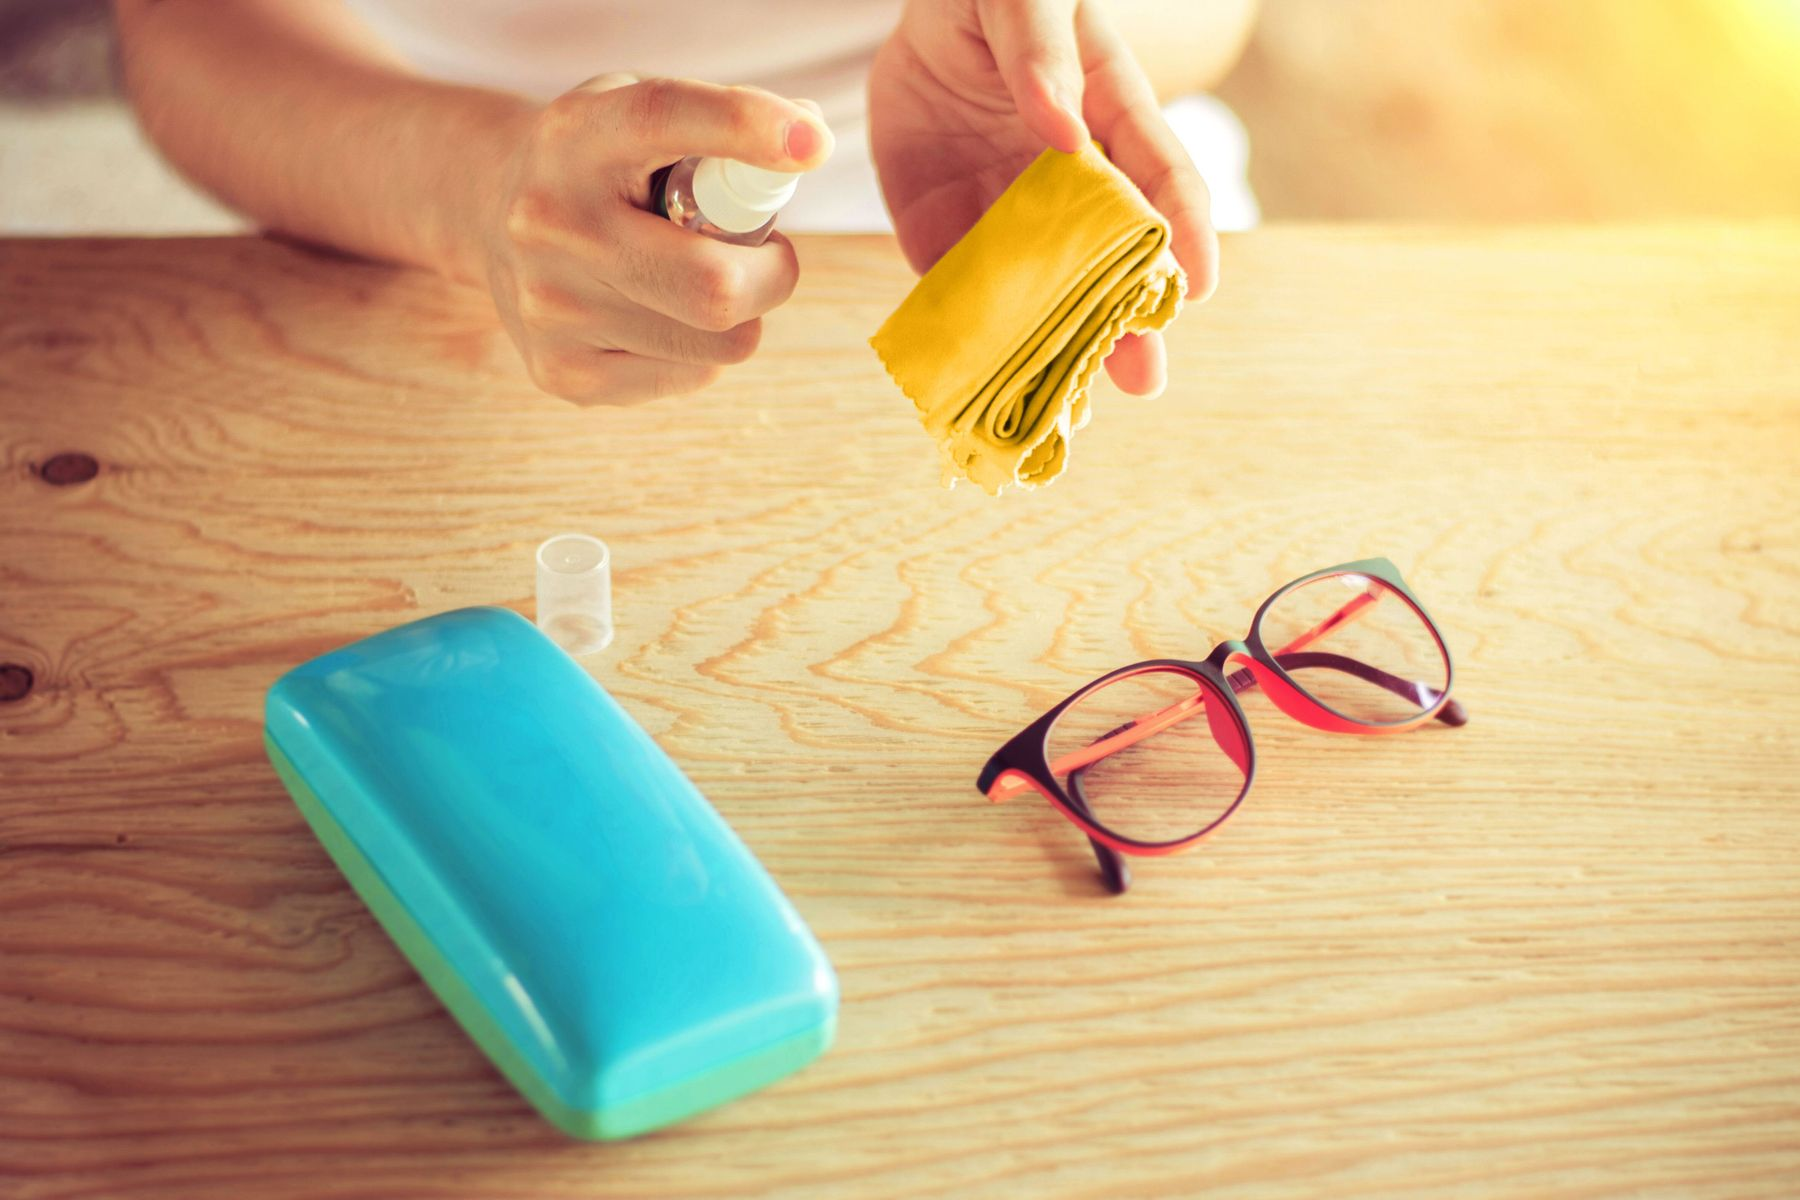 How to clean eyeglasses